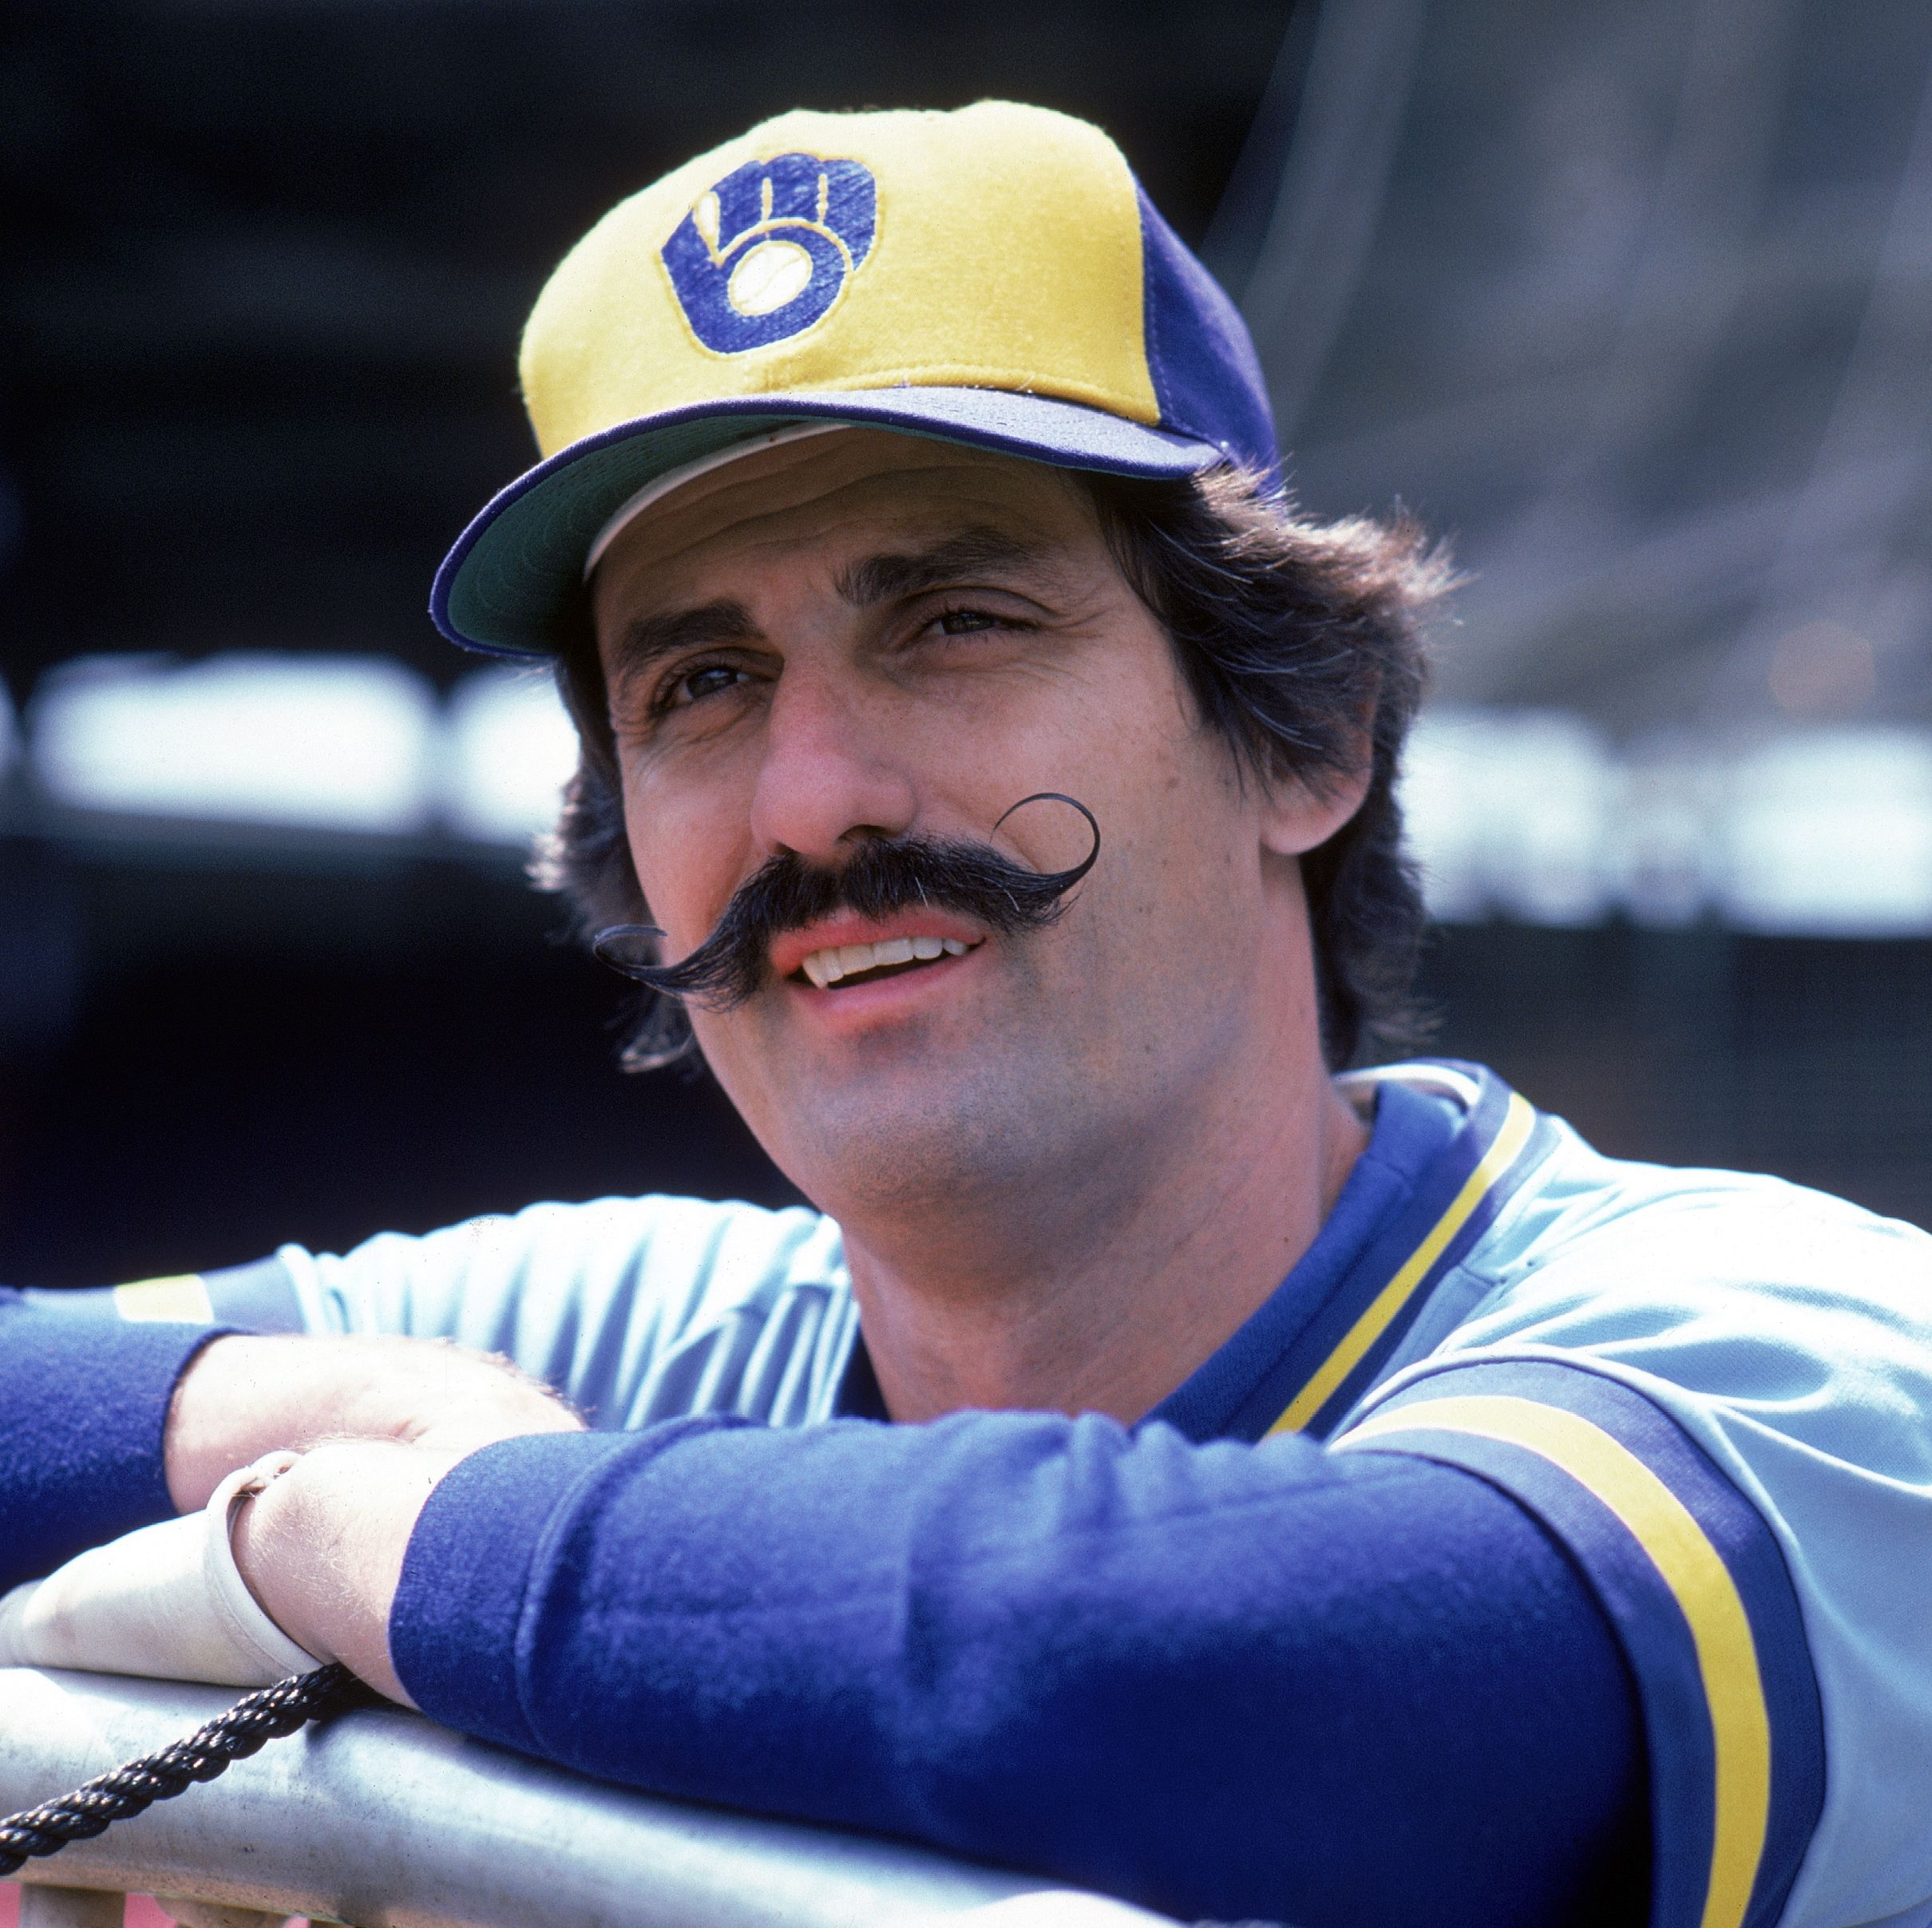 1982: Rollie Fingers Even though Fingers was a legendary baseball pitcher, he was equally known for his performance on the field as his signature handlebar mustache.